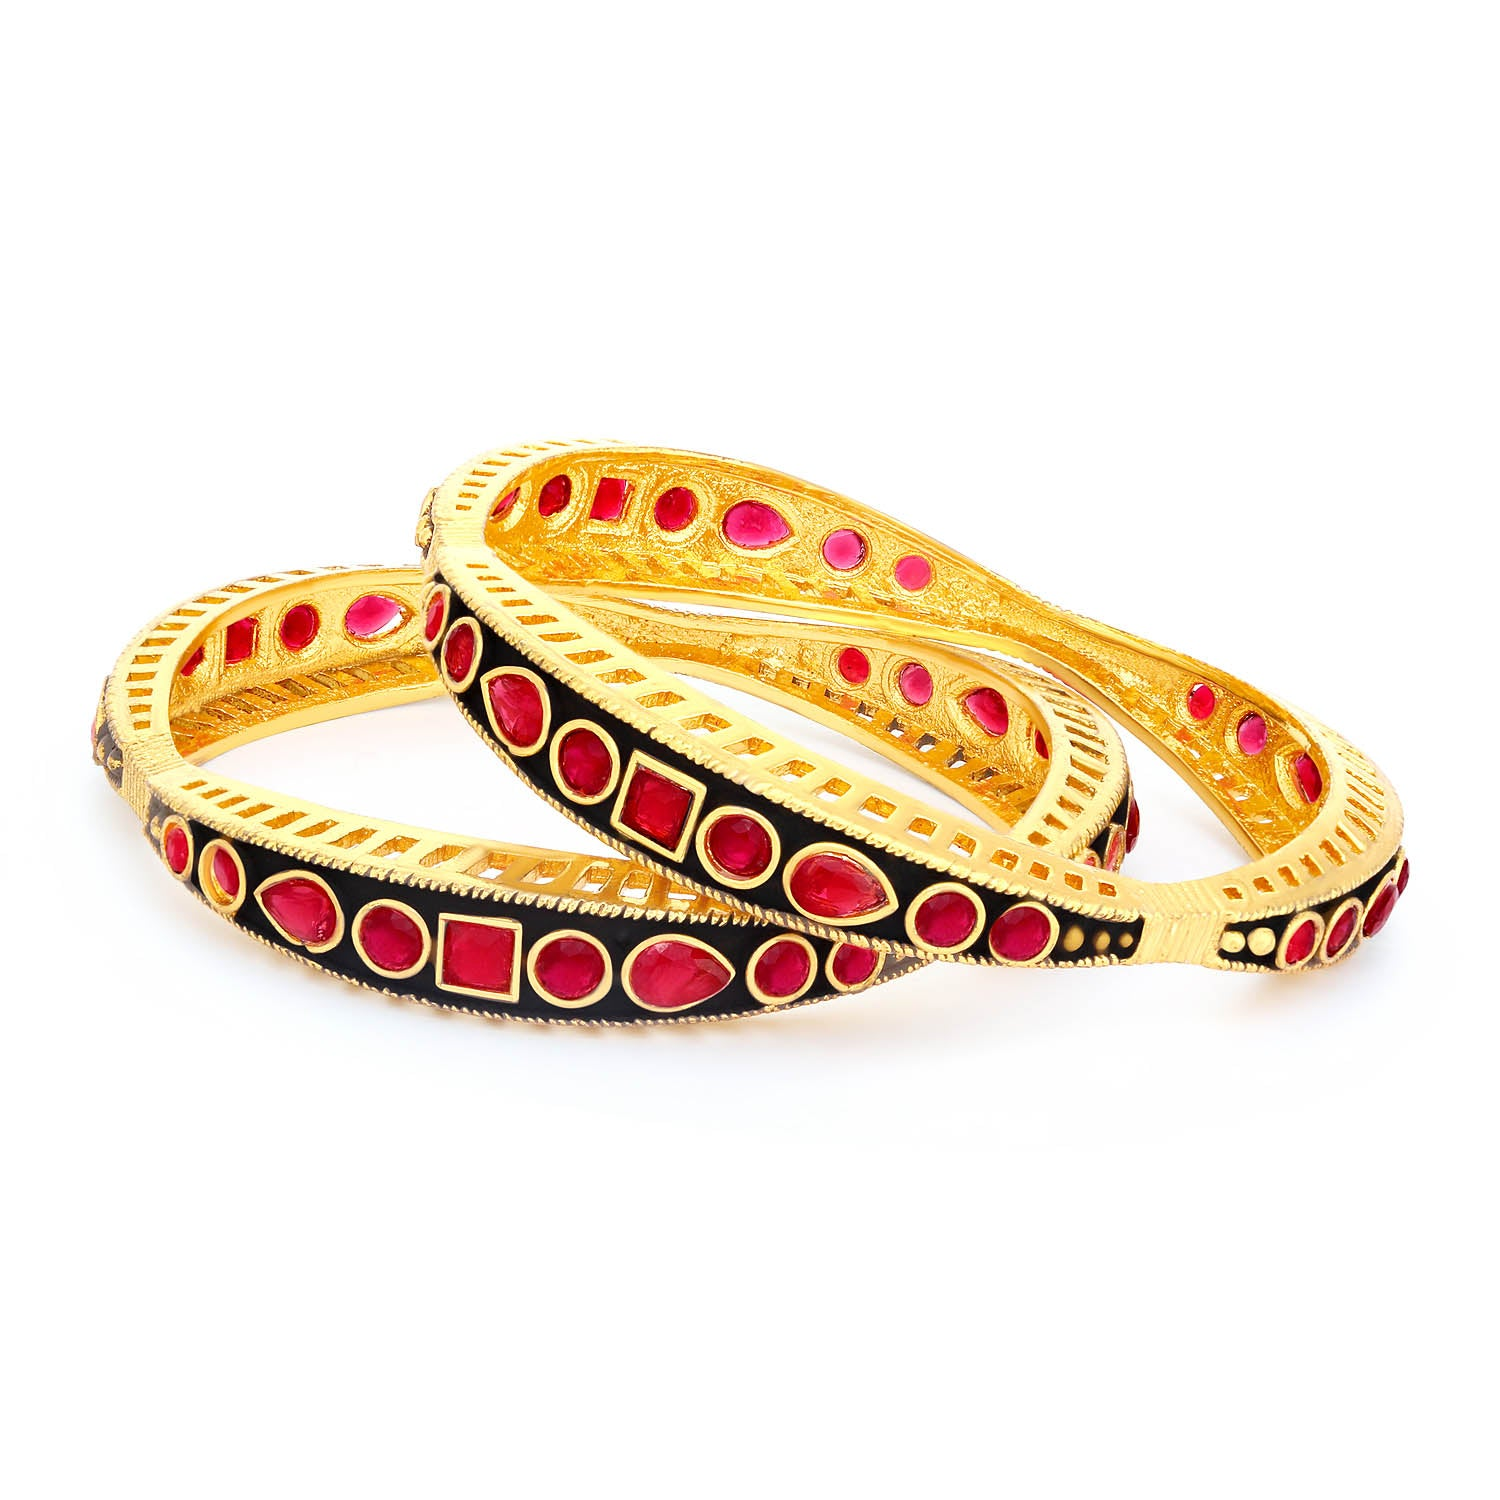 Sukkhi Glittery Gold Plated Meenakari Bangle Set For Women-SUKKHI1-Bangle